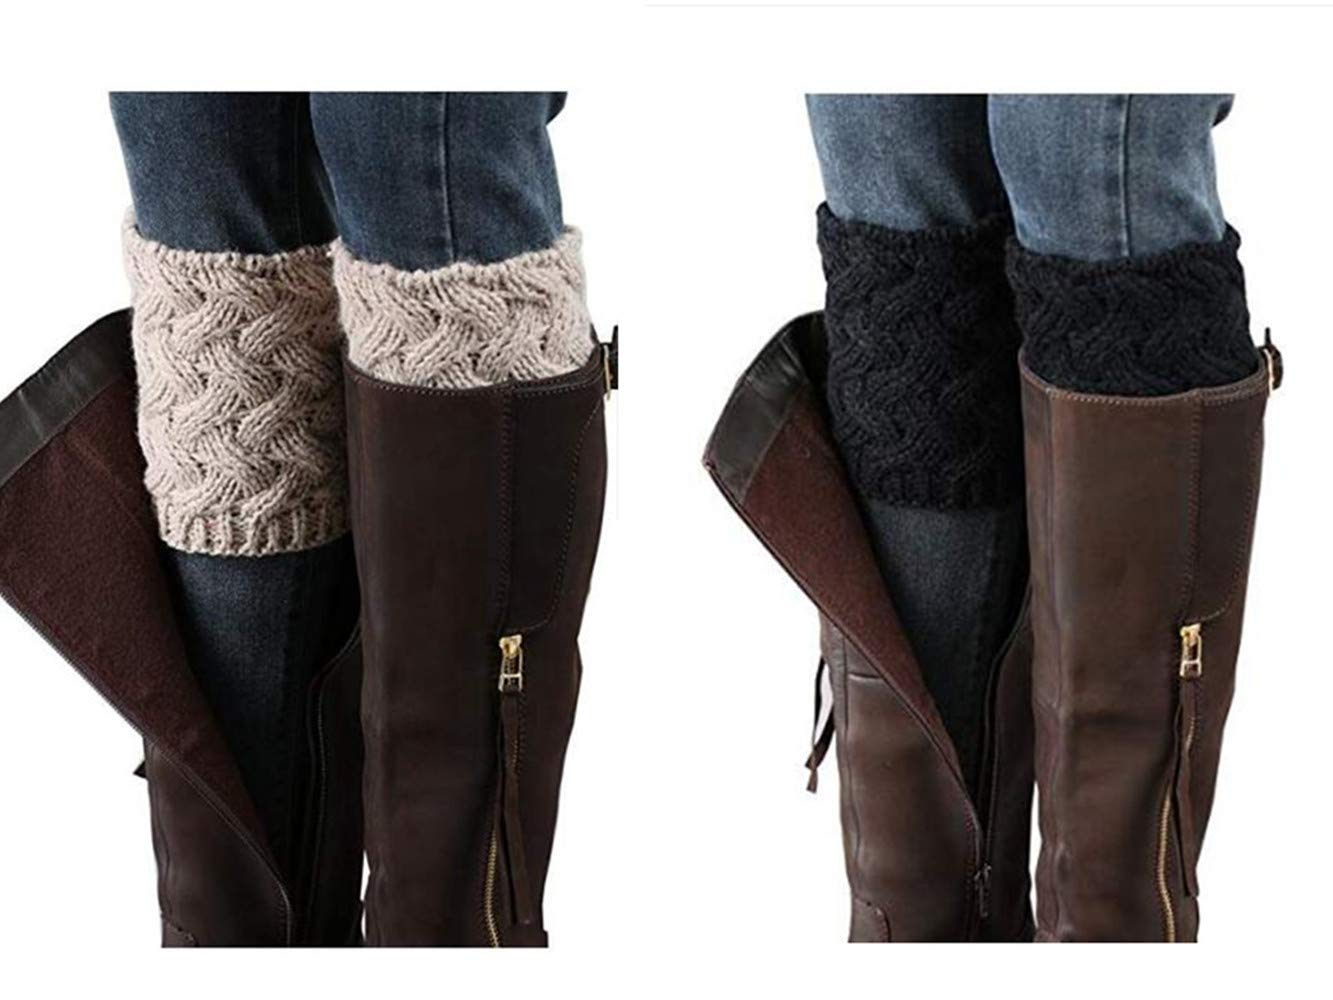 Xugq66 4 Pairs Women Winter Leg Warmer Crochet Knit Boot Cuffs Socks (2 Pair-a9)